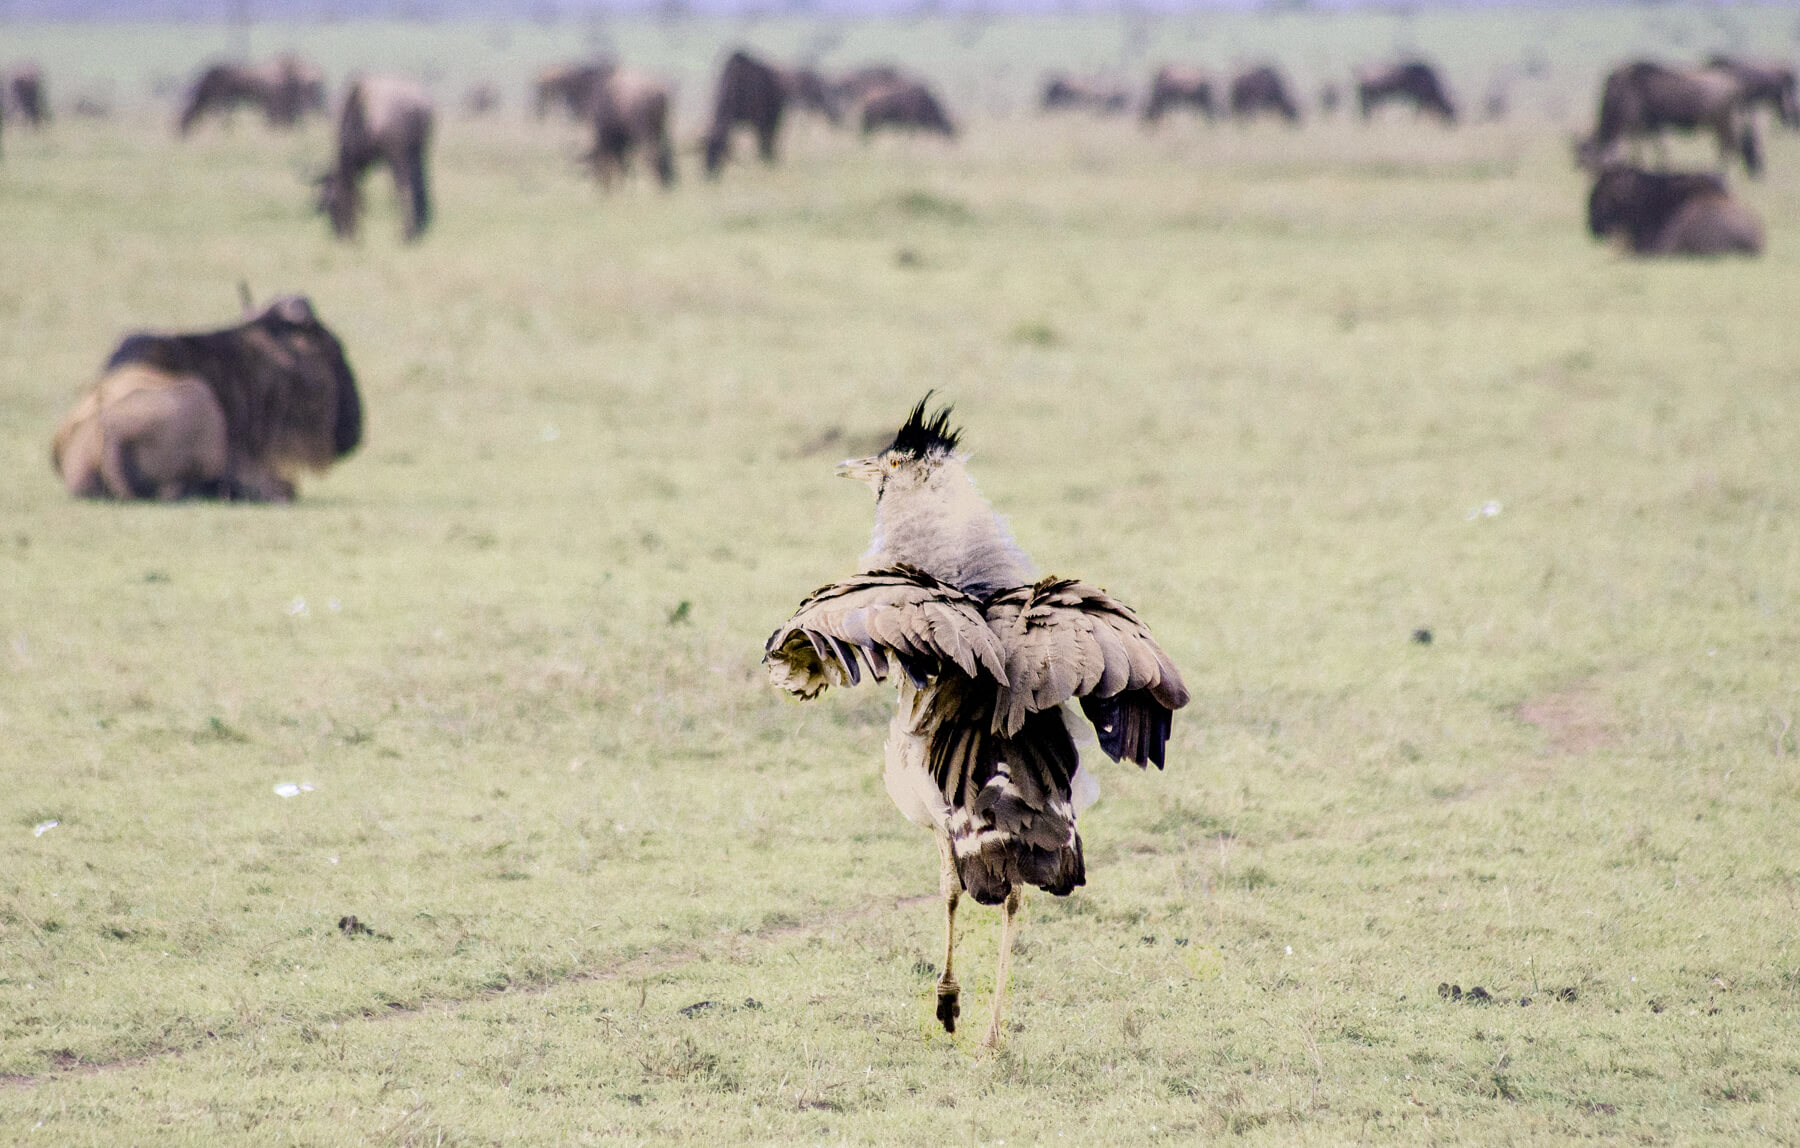 The largest bird in the Maasai Mara (Kori Bustard) walking towards a group of wildebeest, flapping its wings